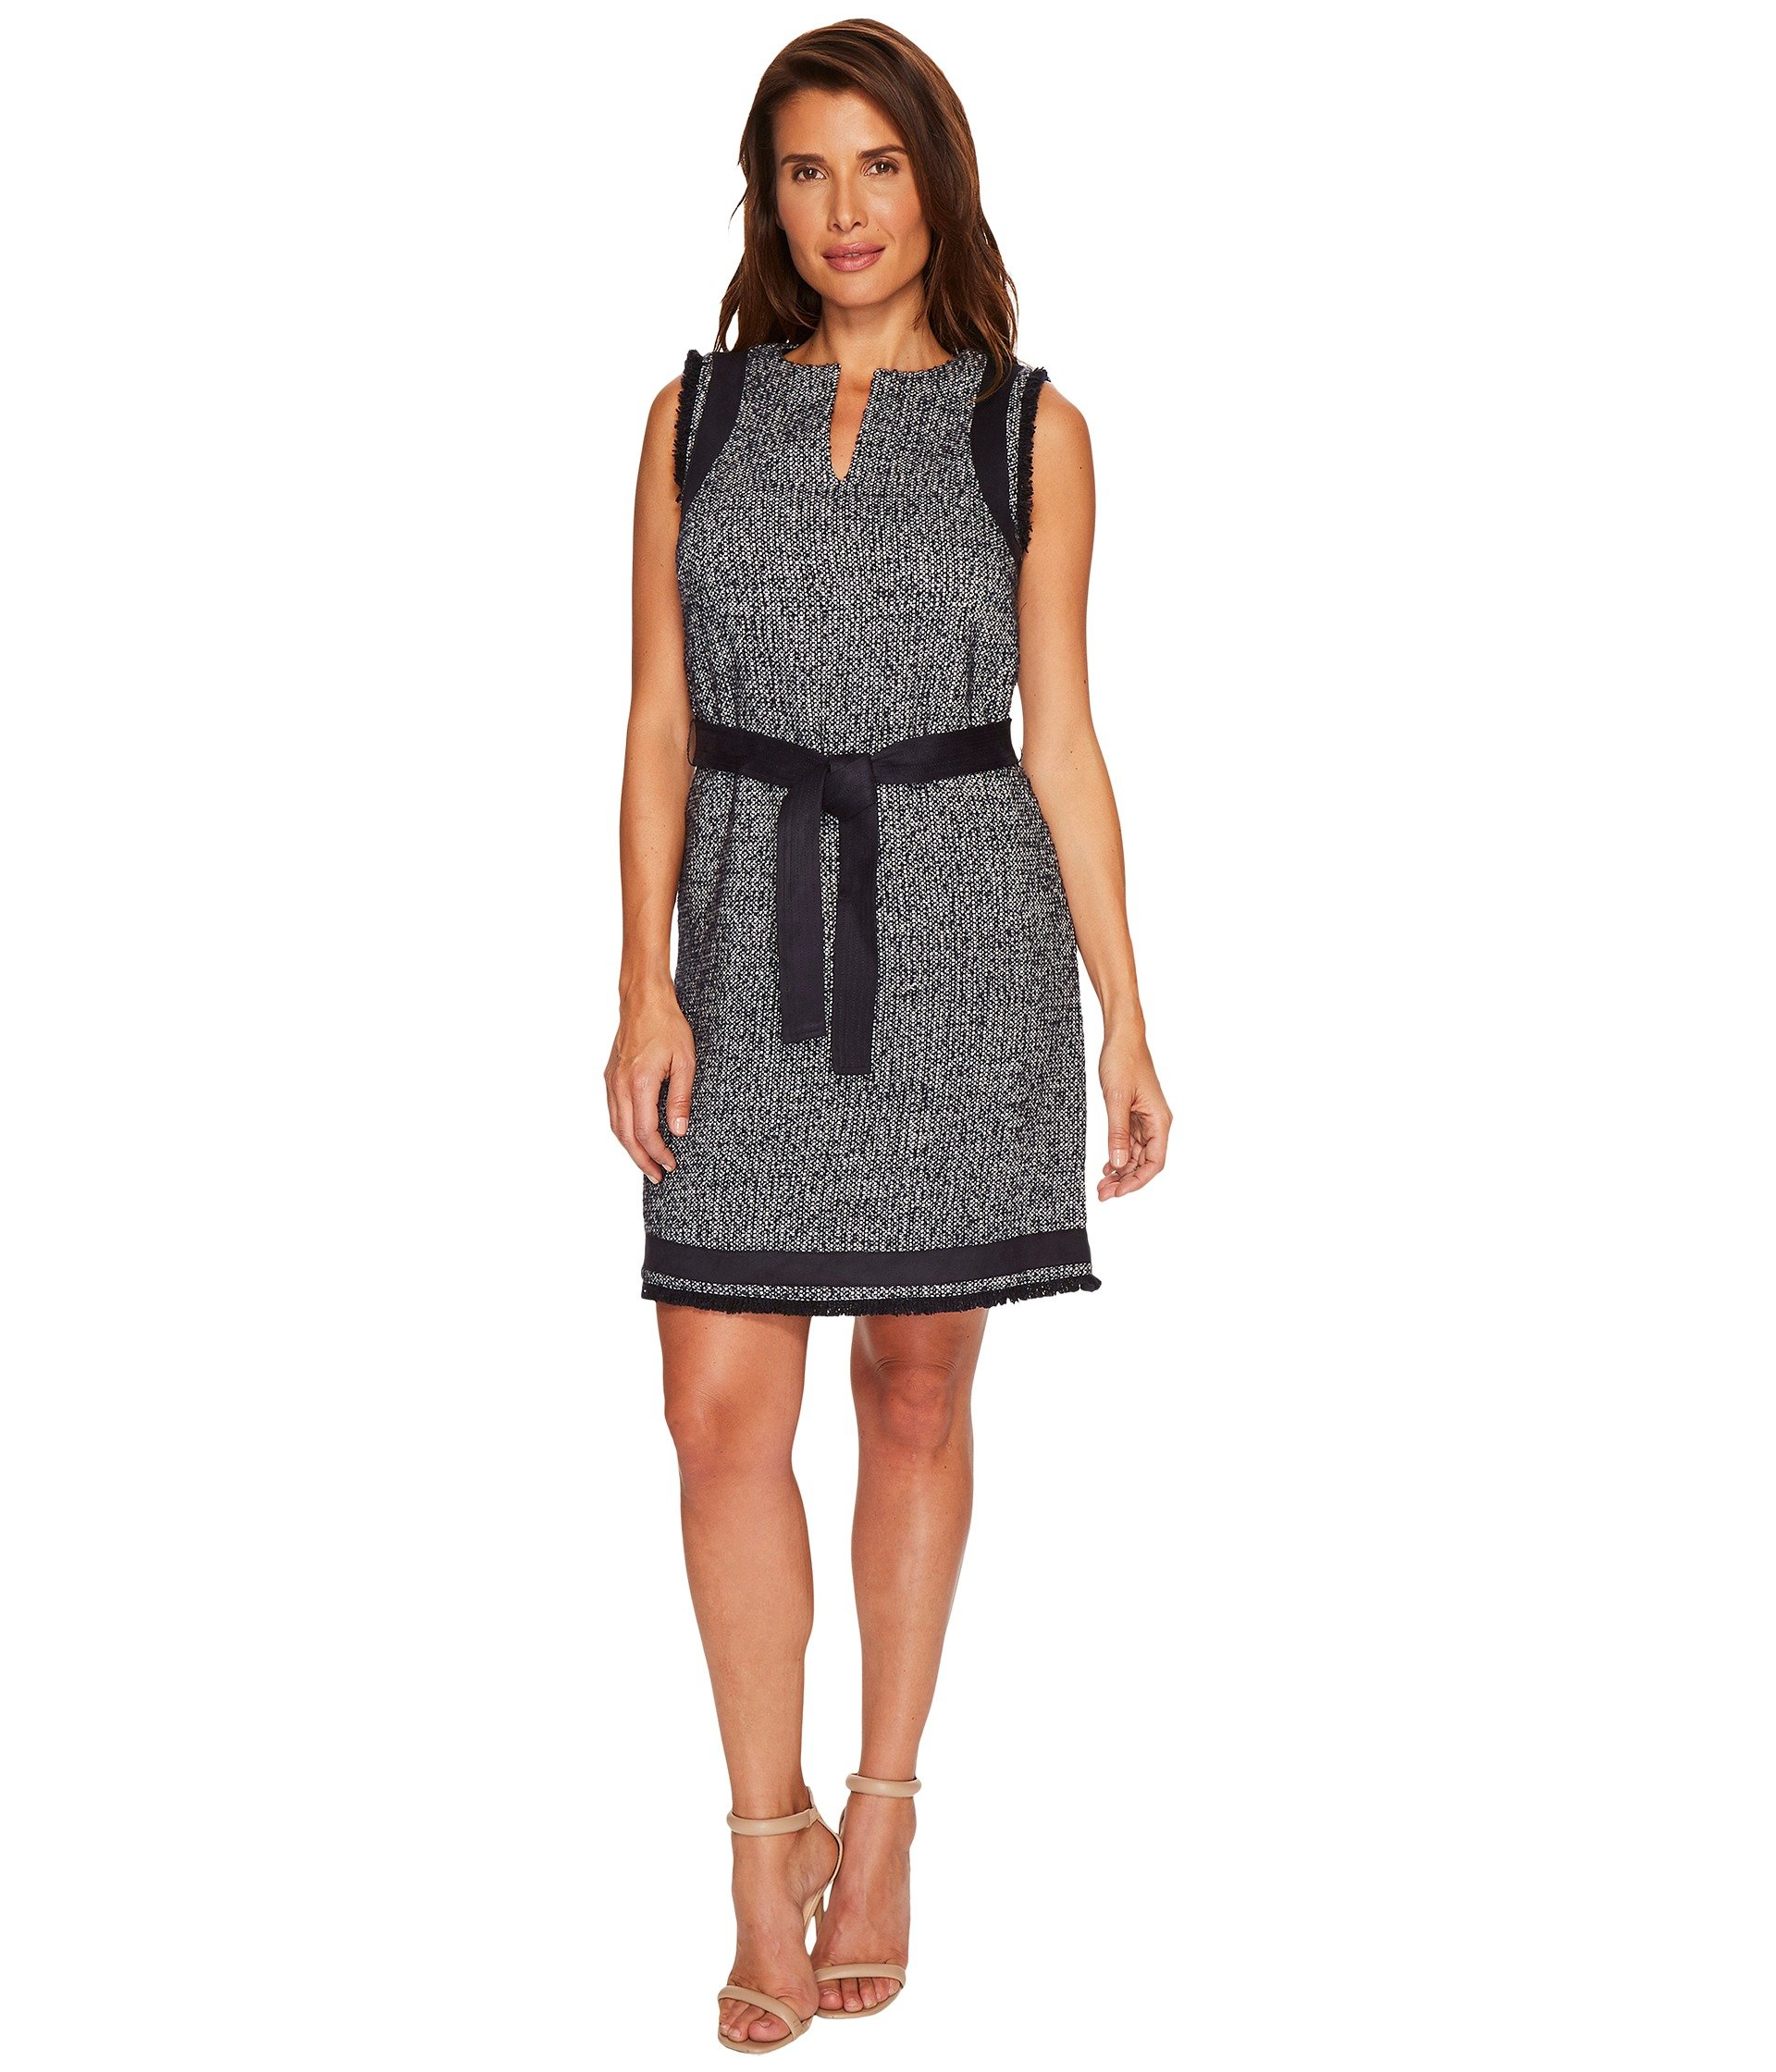 ELLEN TRACY Split-Neck Shift Dress, Night Sky Multi